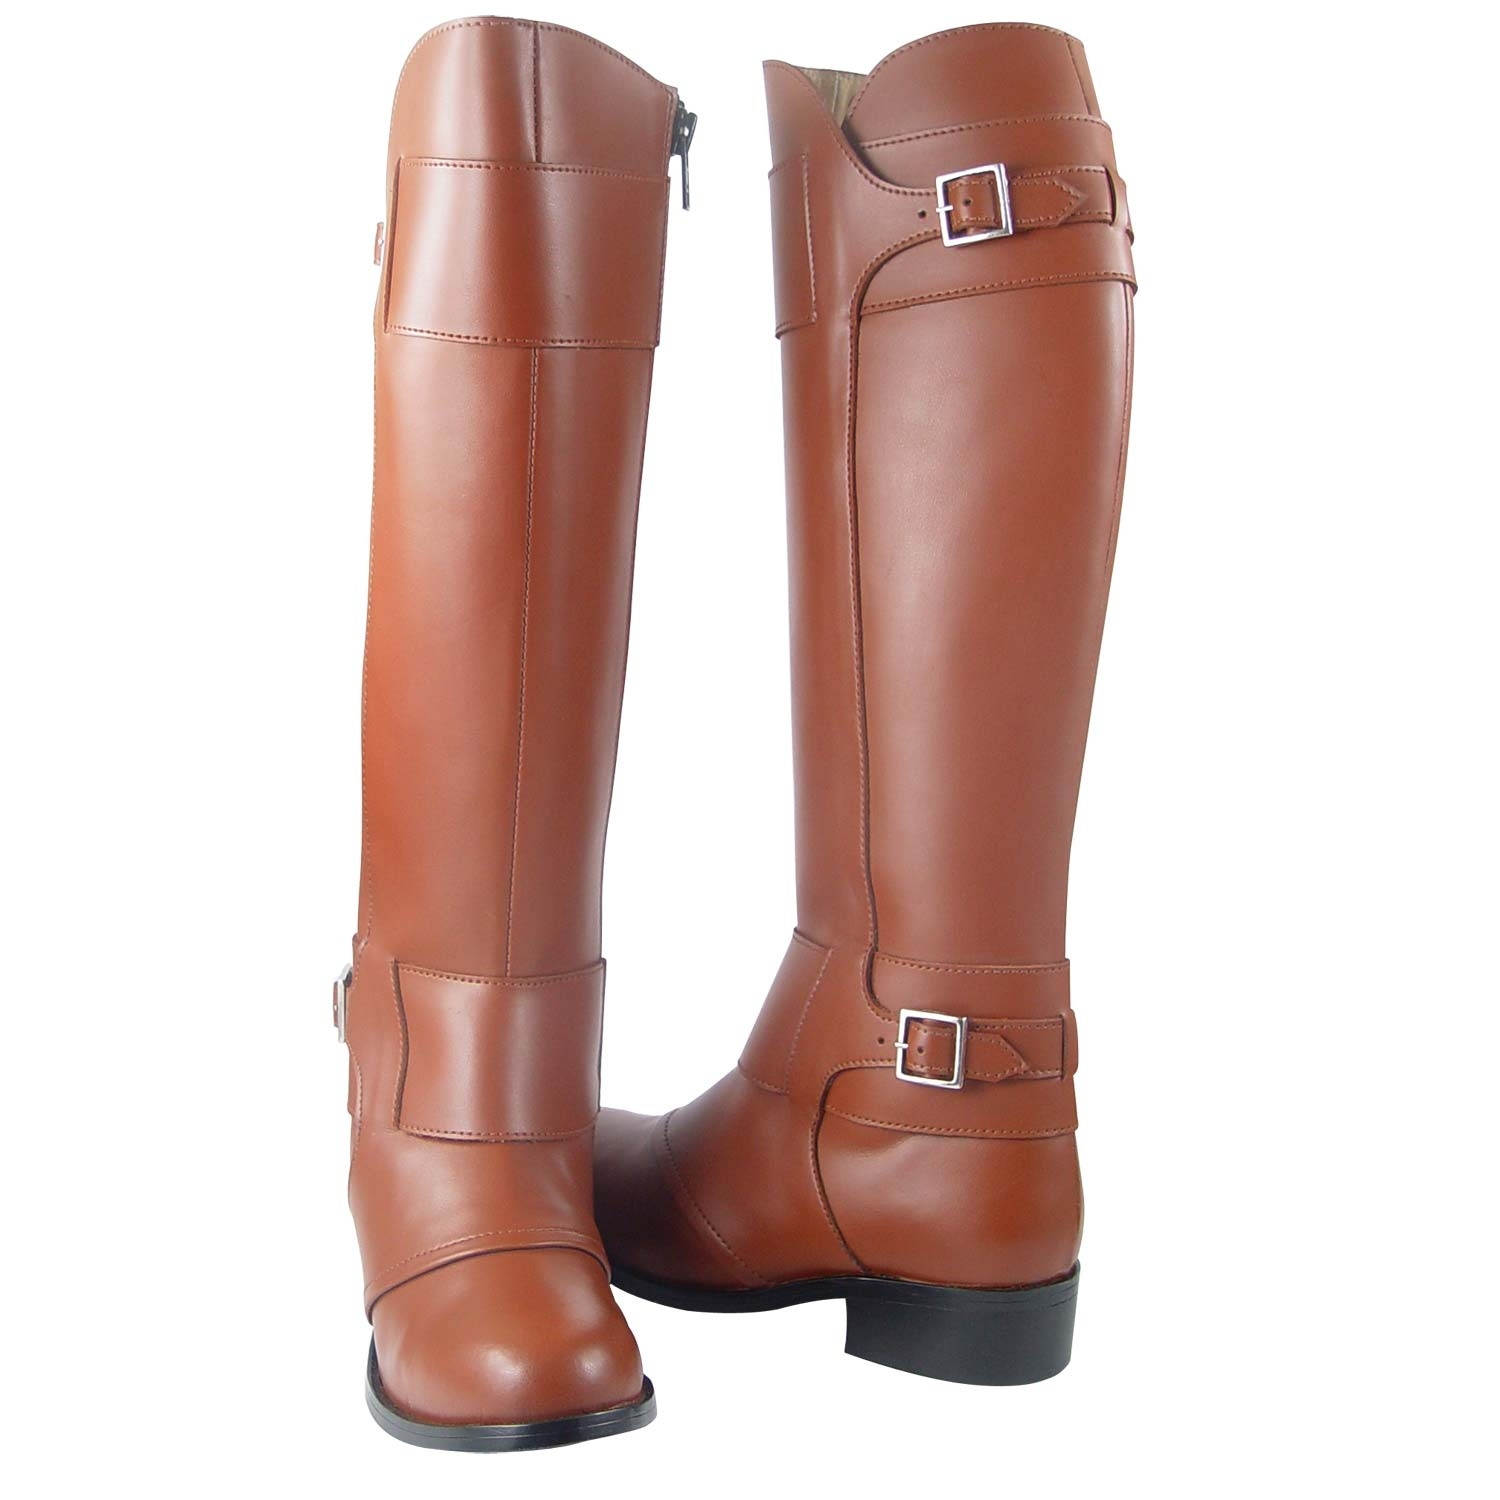 Hispar-DR-Men-zip-Fashion-tall-knee-high-English-BOOTs